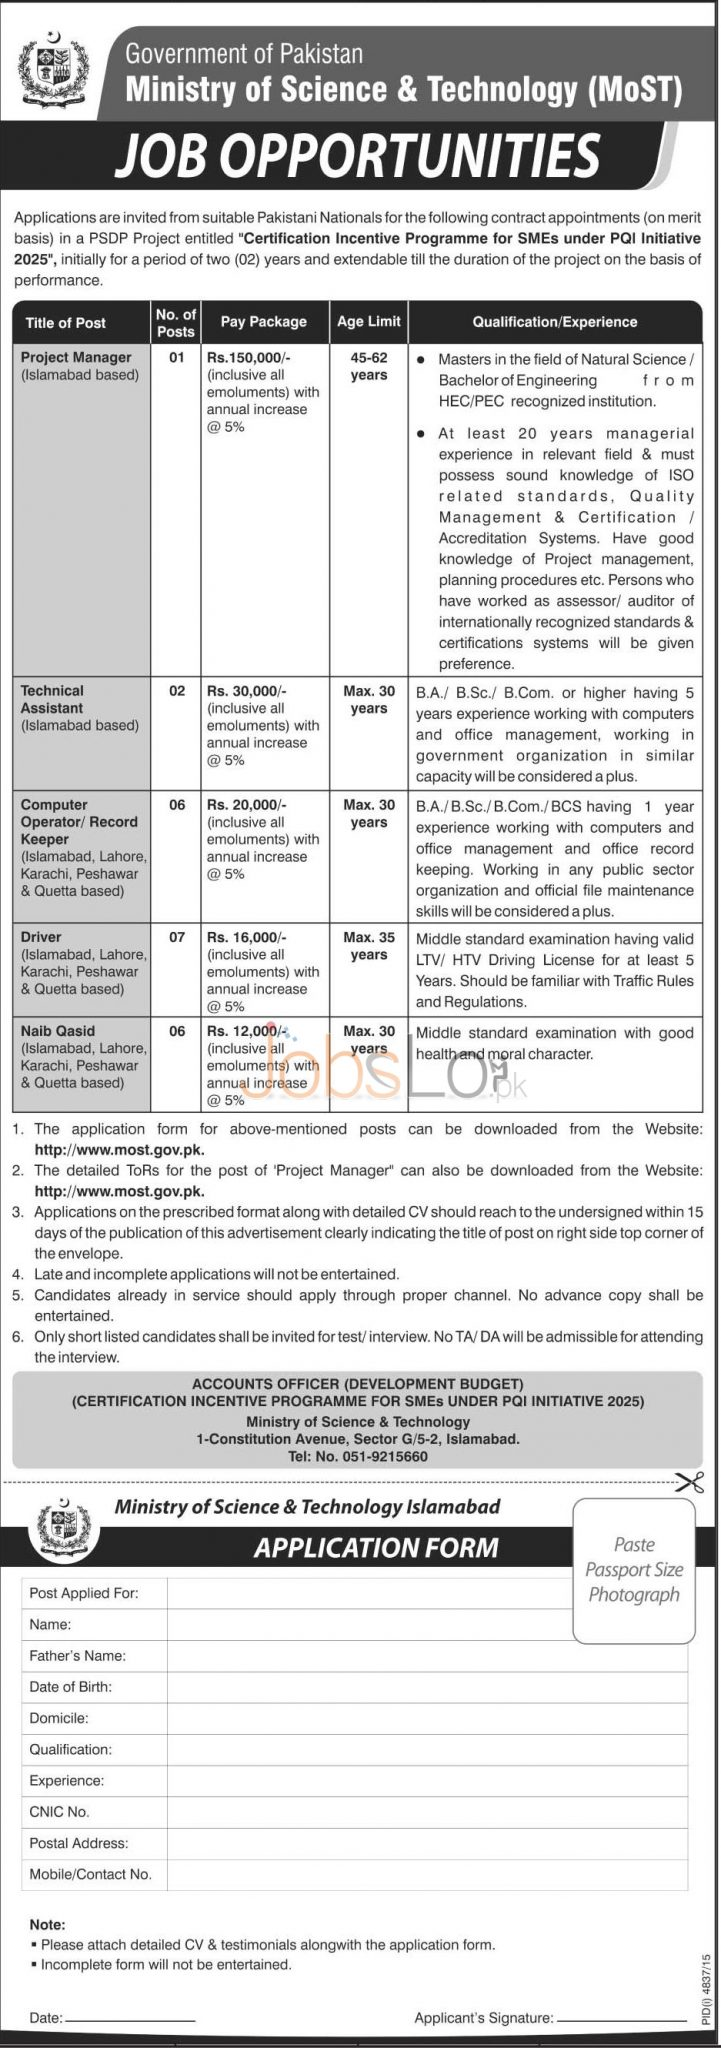 Ministry of Science & Technology Jobs 17 March 2016 Latest Advertisement